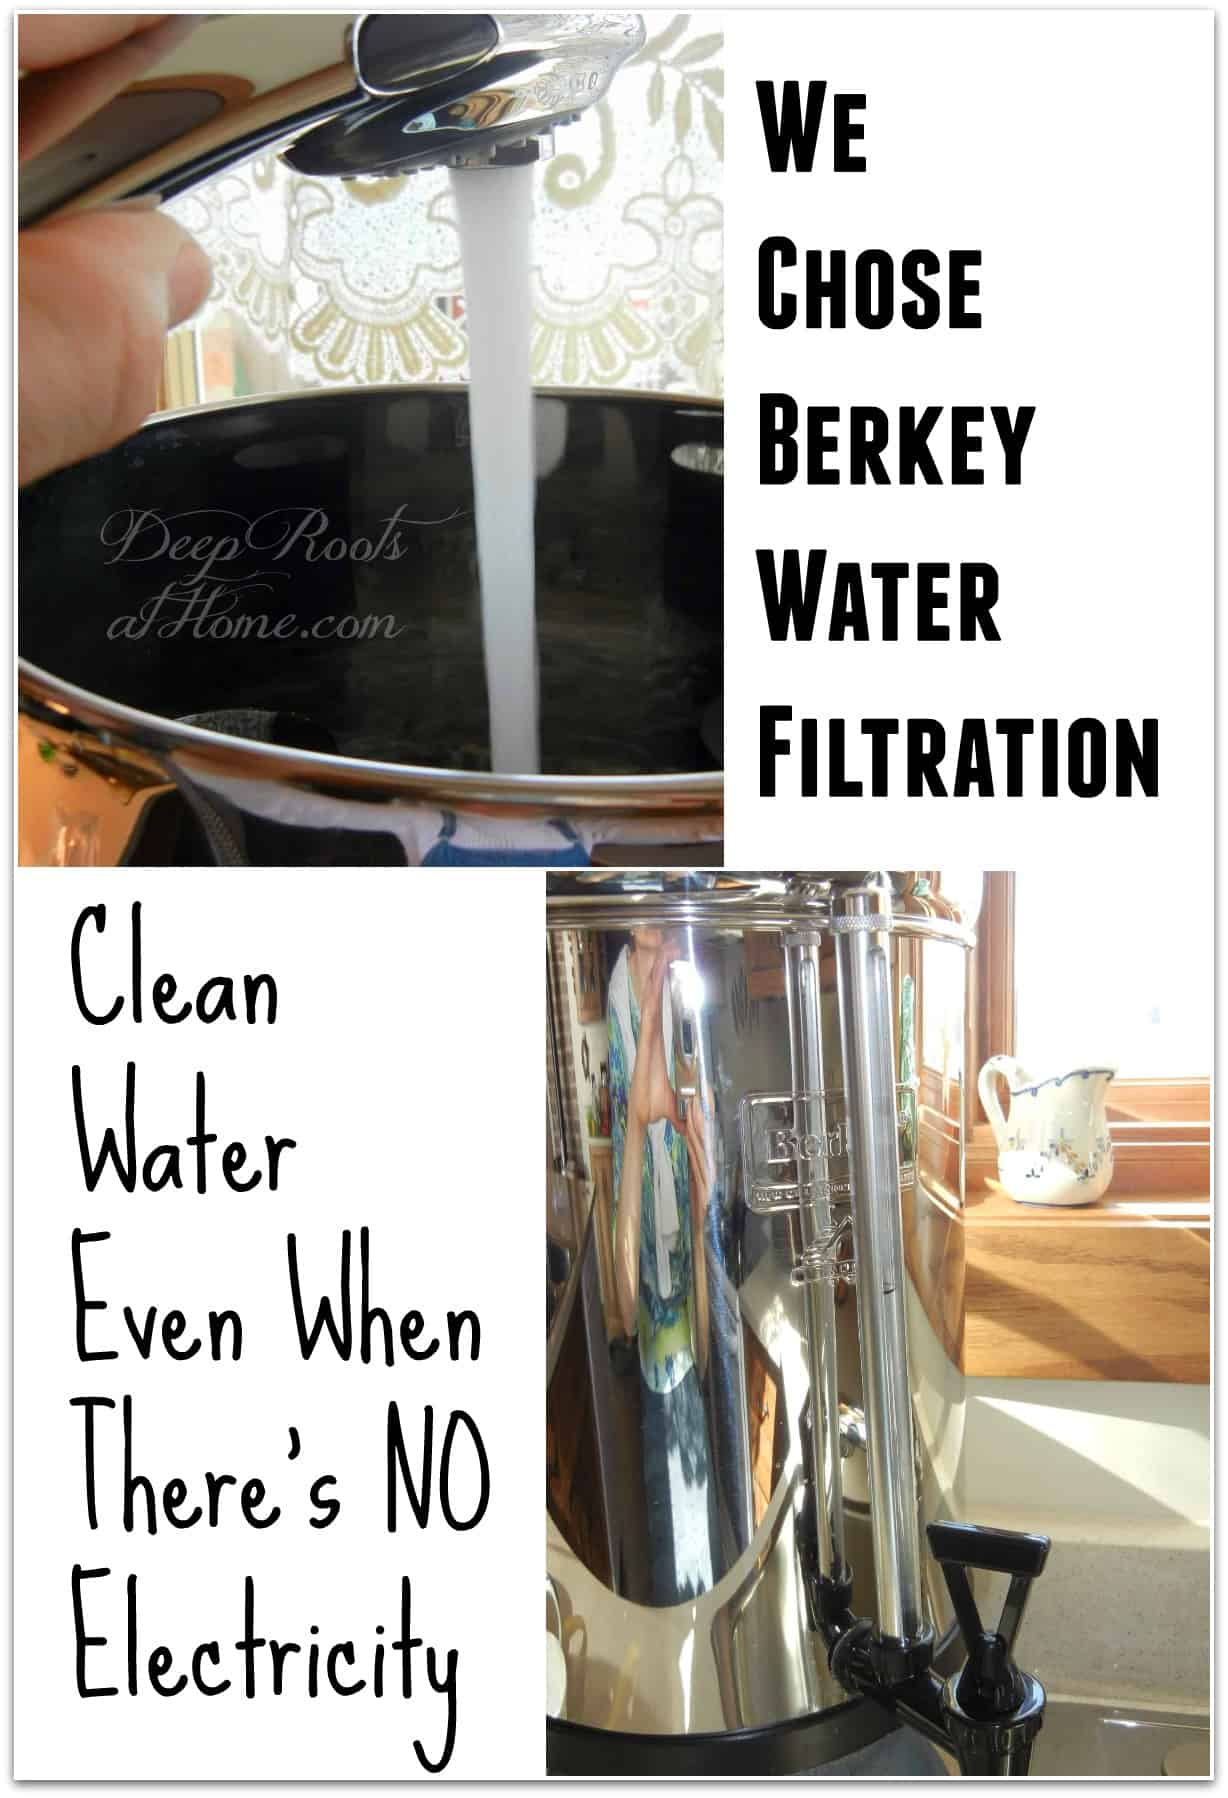 Fluoride-Free Water Even If There's NO Electricity: We Chose the Berkey. The Royal Berkey water filter.